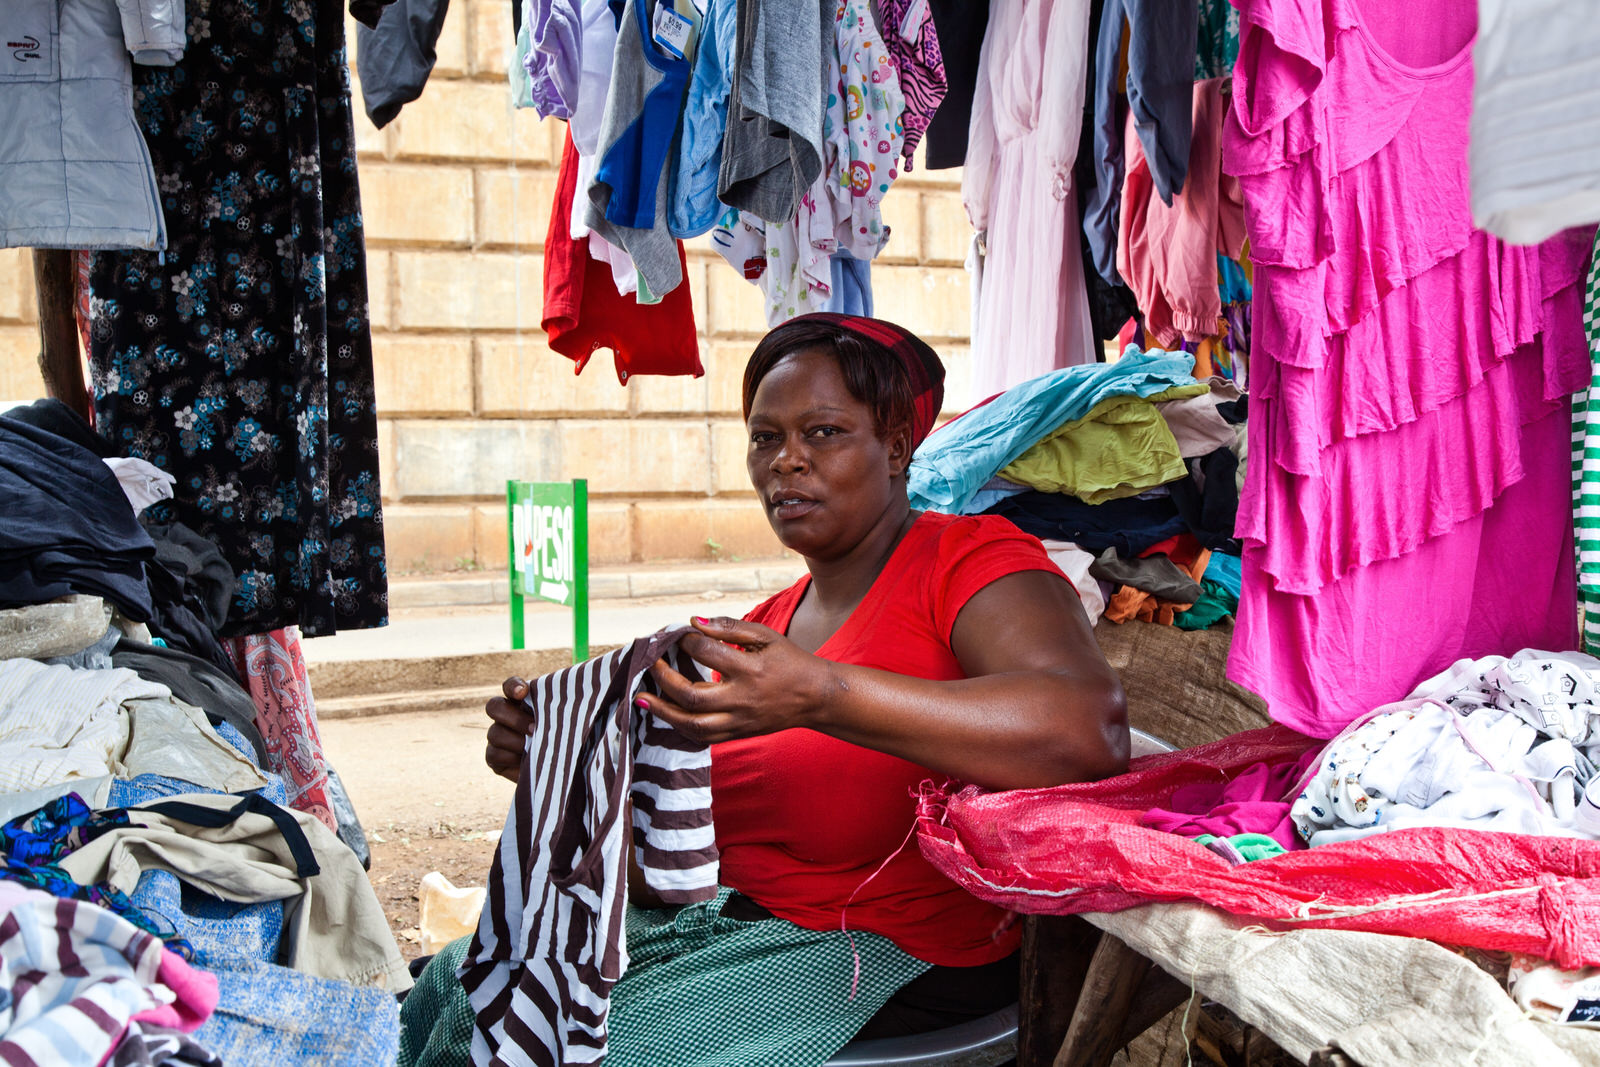 """Rose    moved to Kondele having been evicted from Oile market. Business is not good compared to Oile, but """"at least here we can get our daily bread""""."""